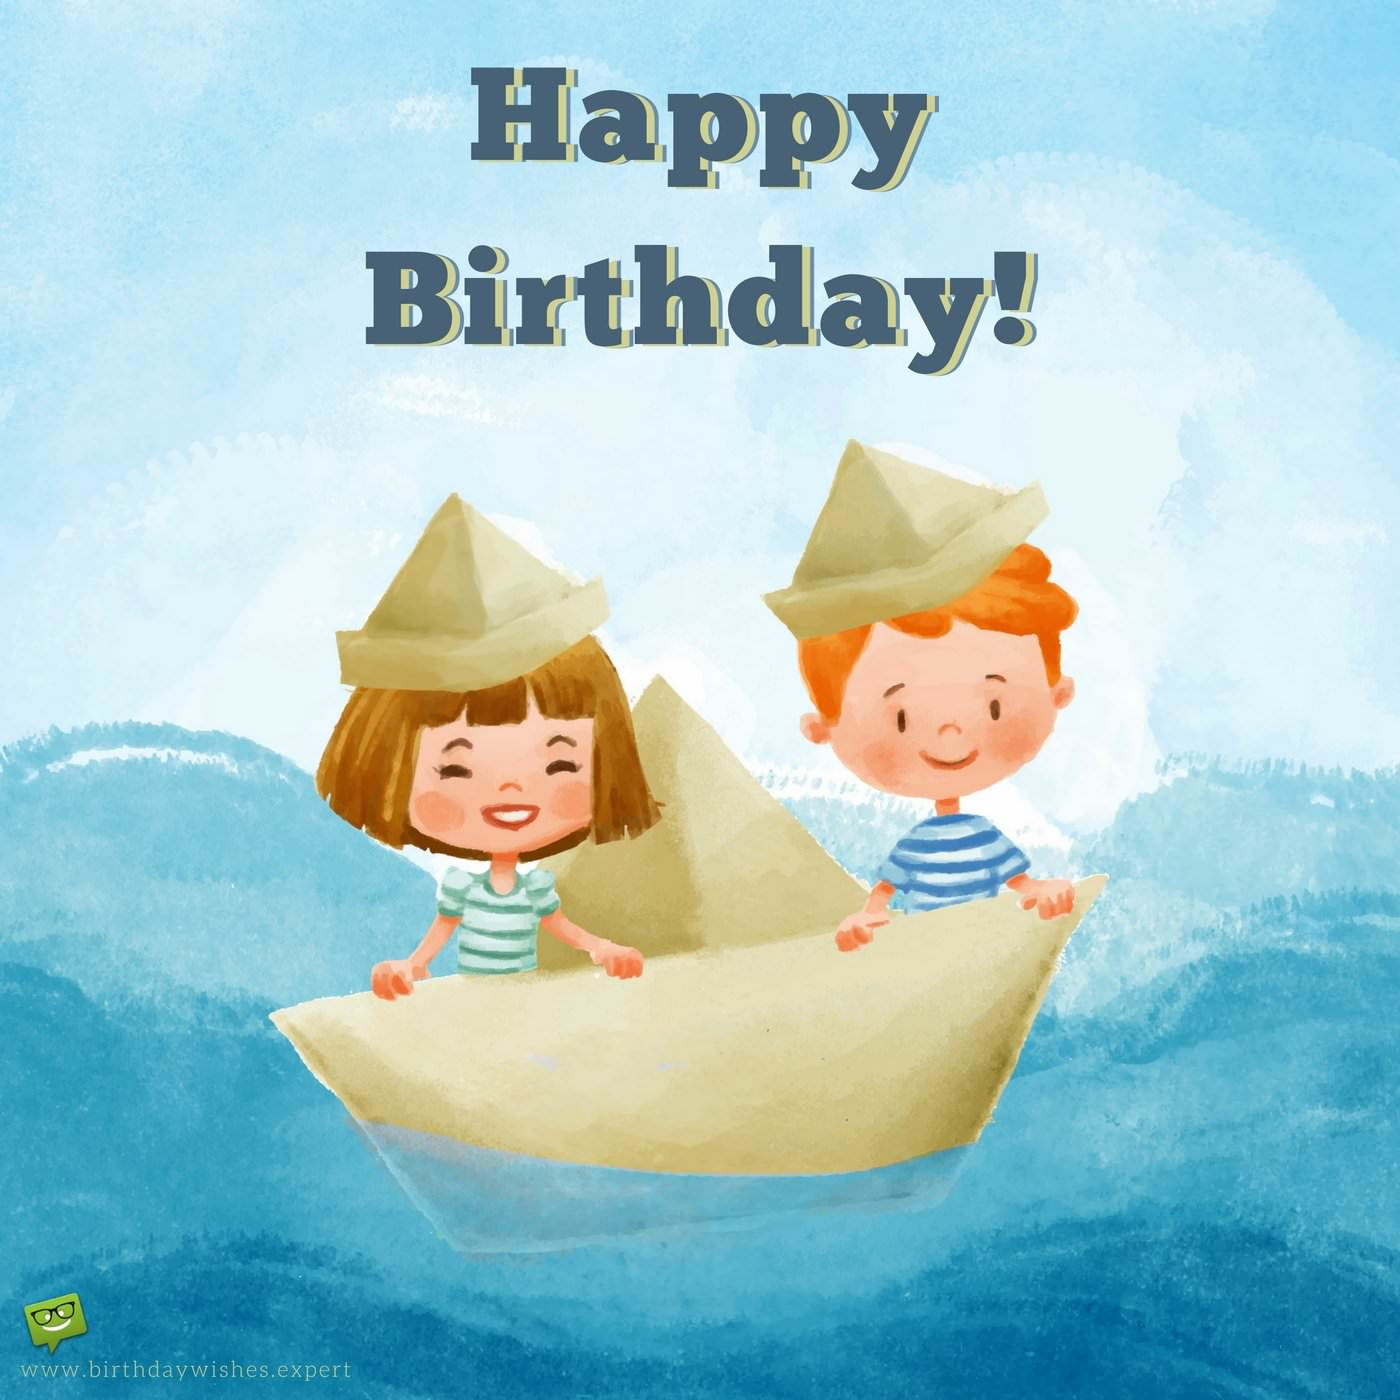 Kids Birthday Wishes: 1st, 2nd, 3rd Birthday Wishes: Our Baby's First Years In Life